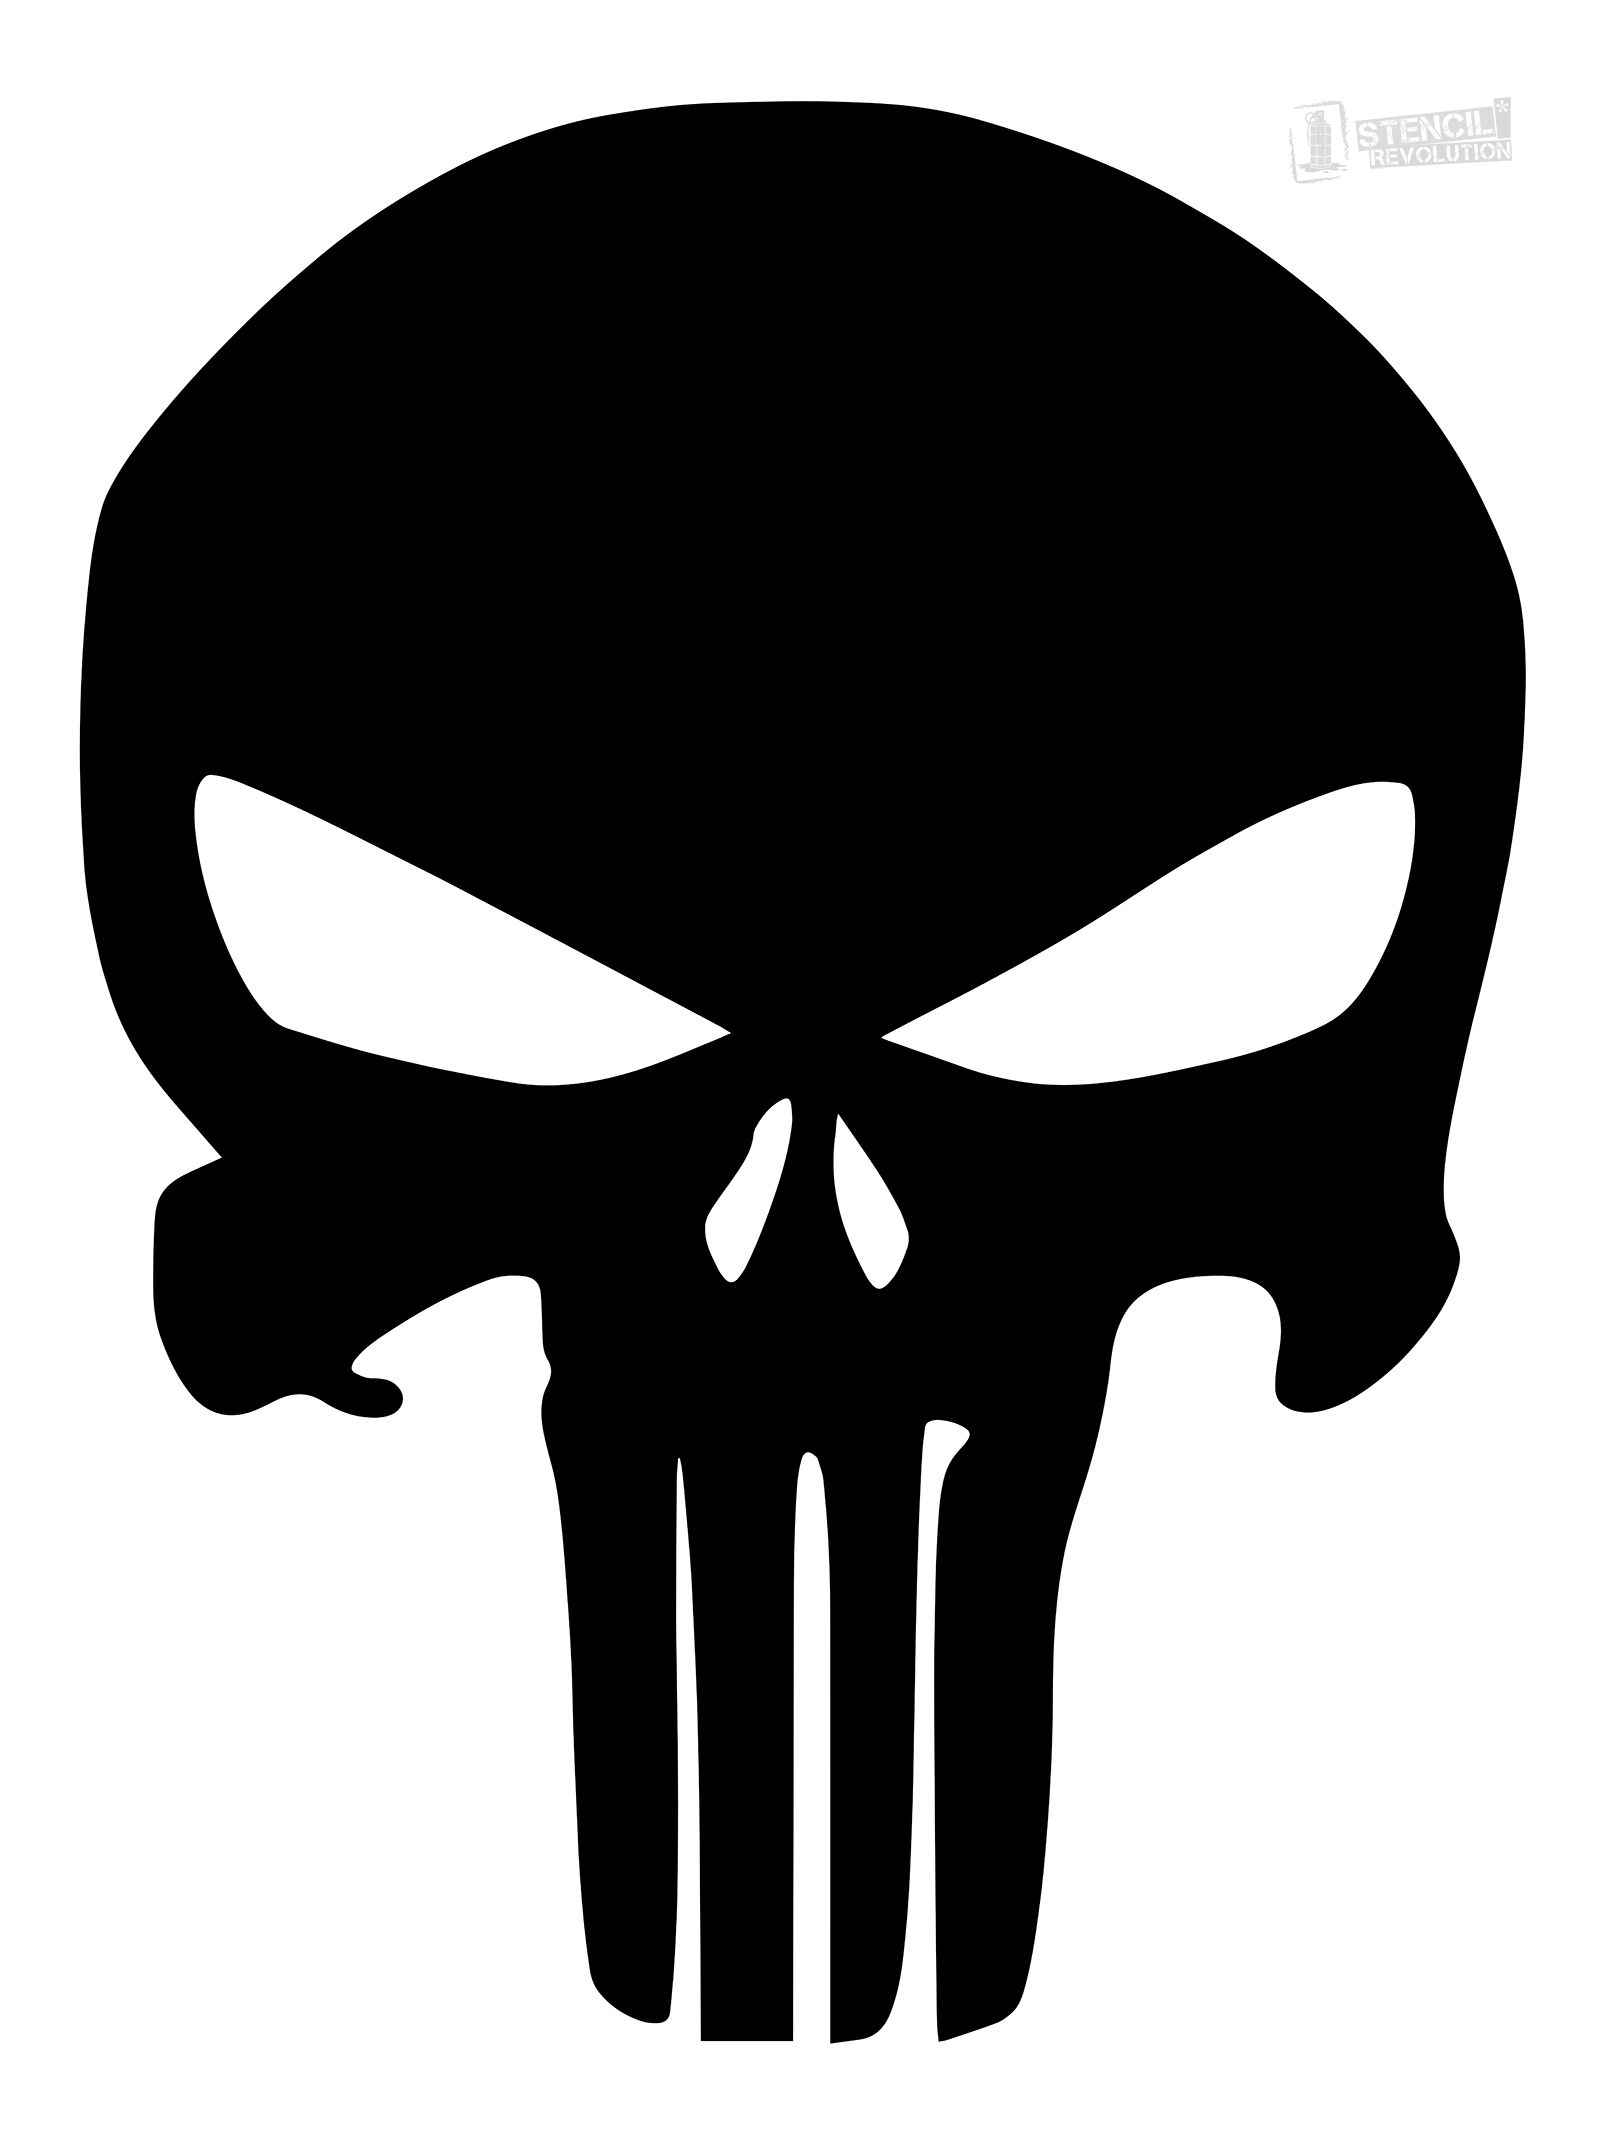 Punisher Logo Vector at GetDrawings.com.